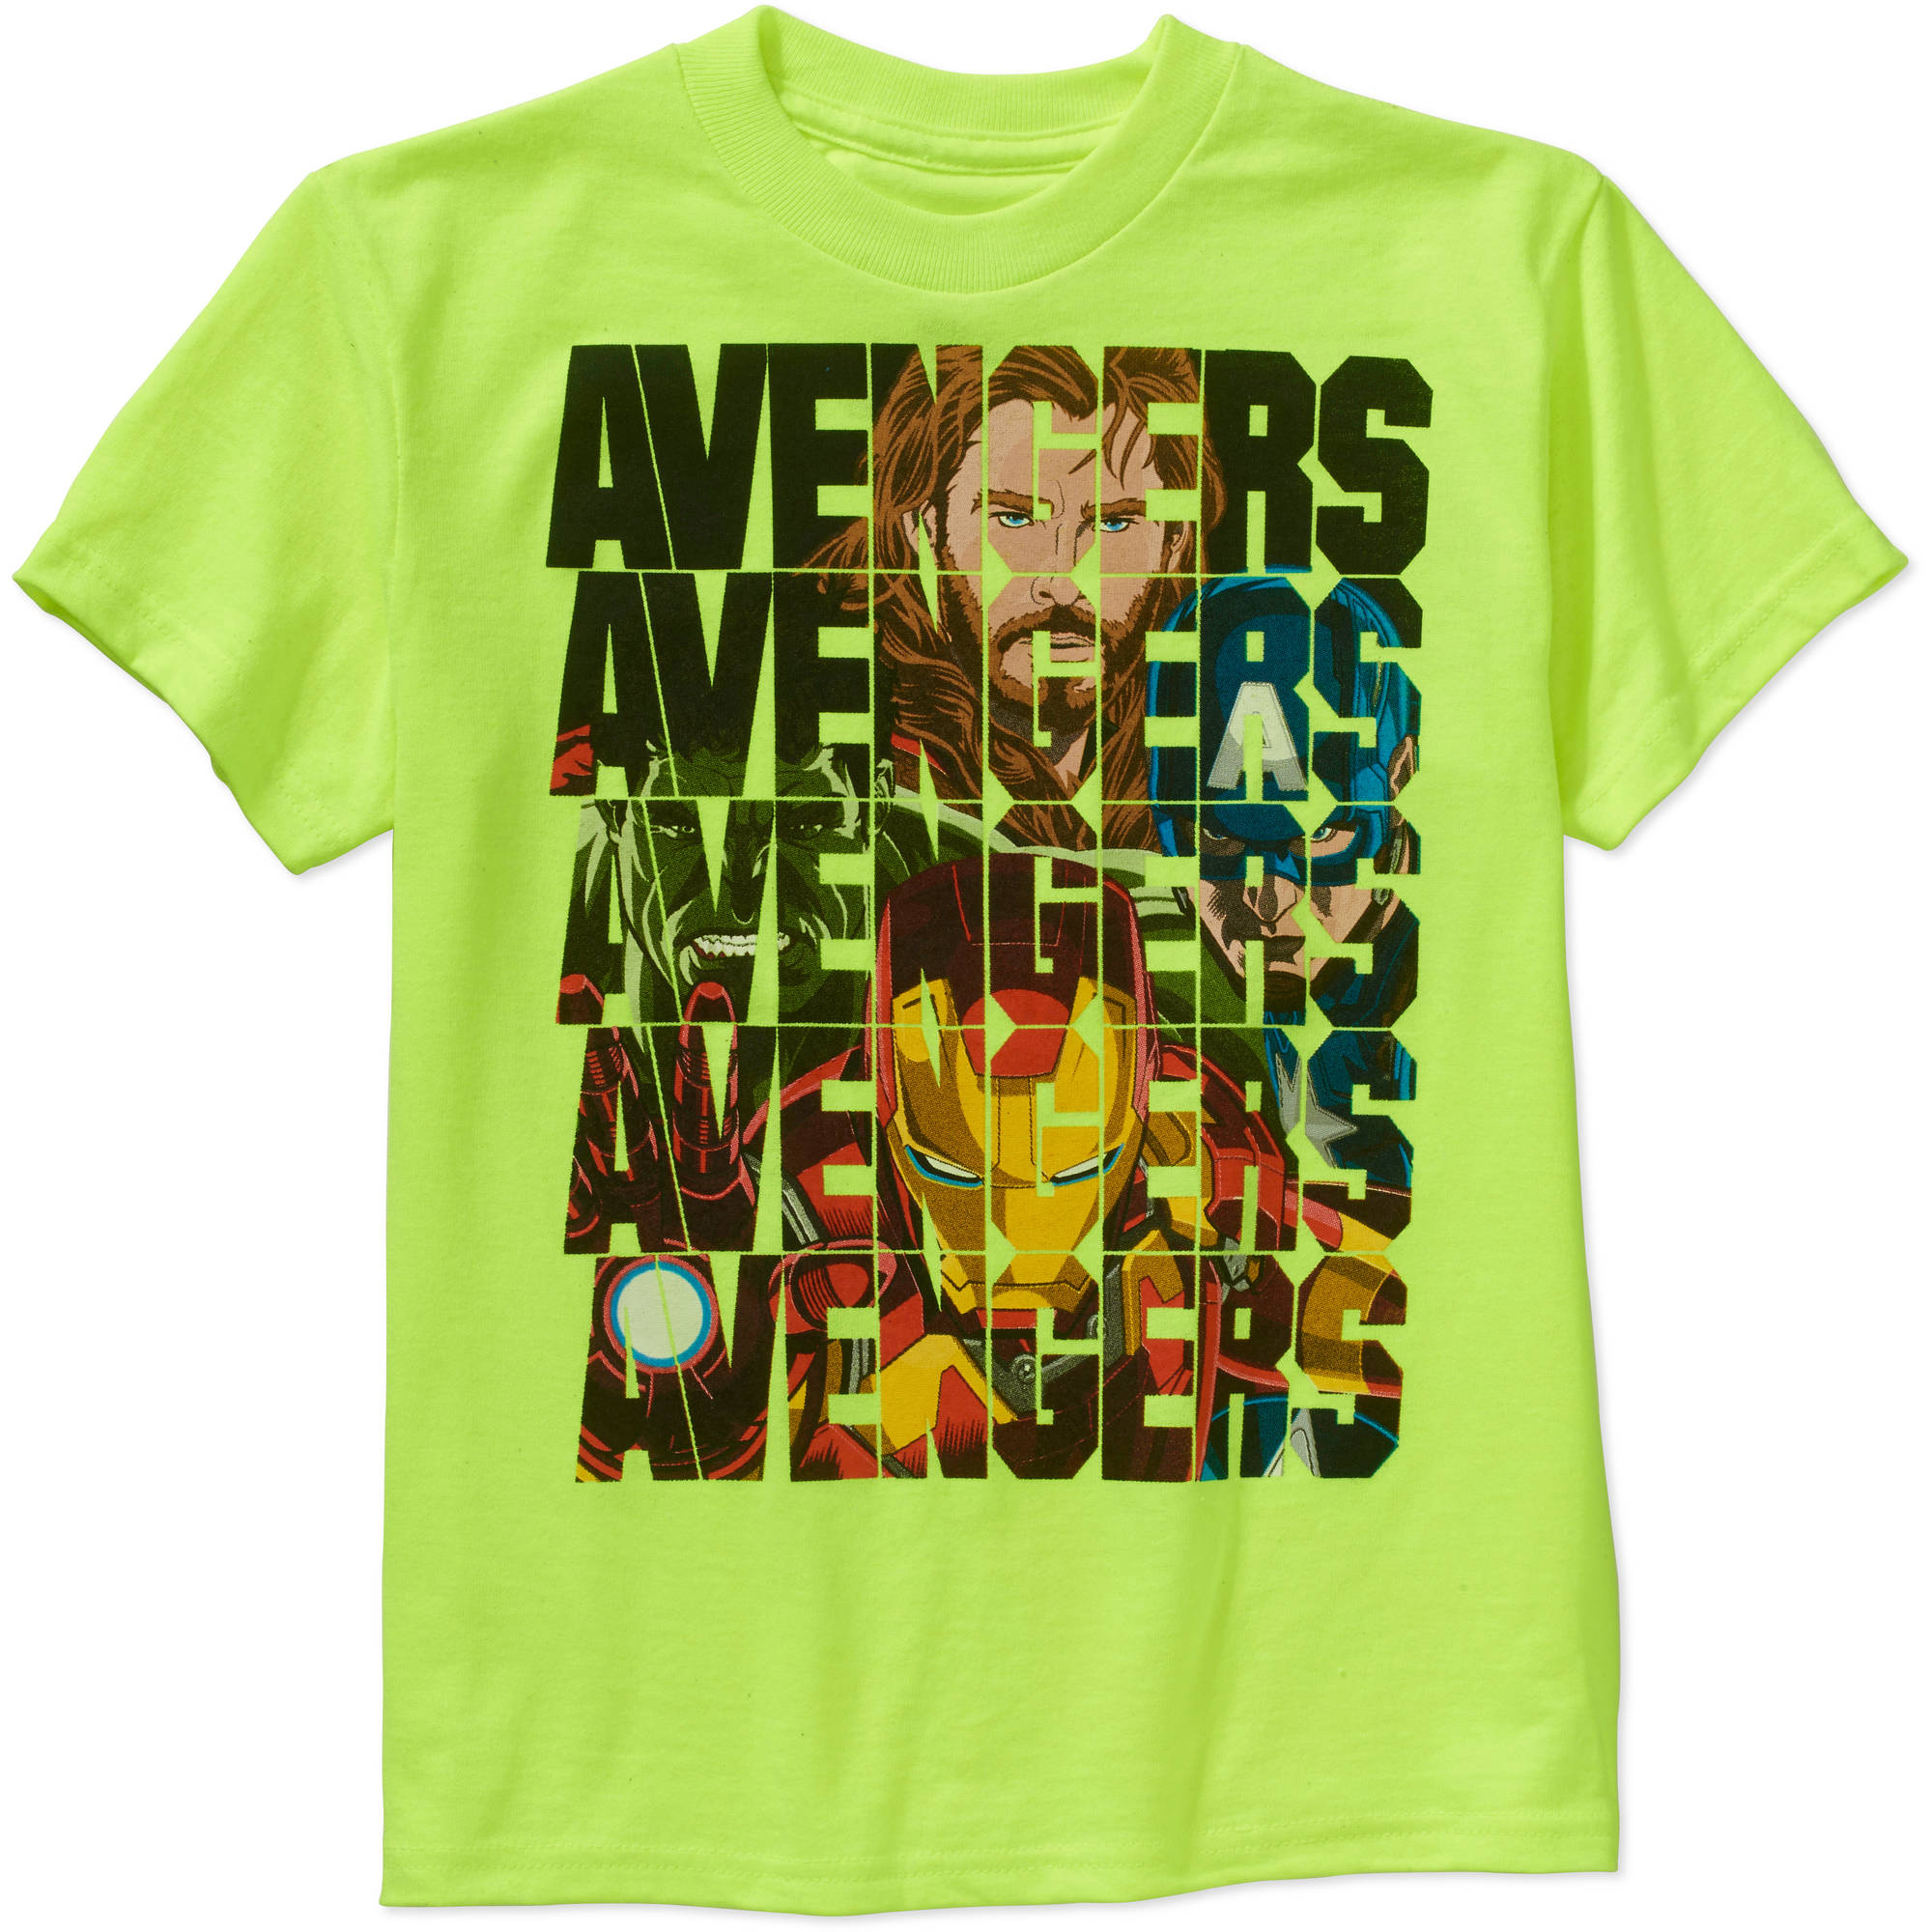 Marvel Avengers Avenge Type Boys' Graphic Tee